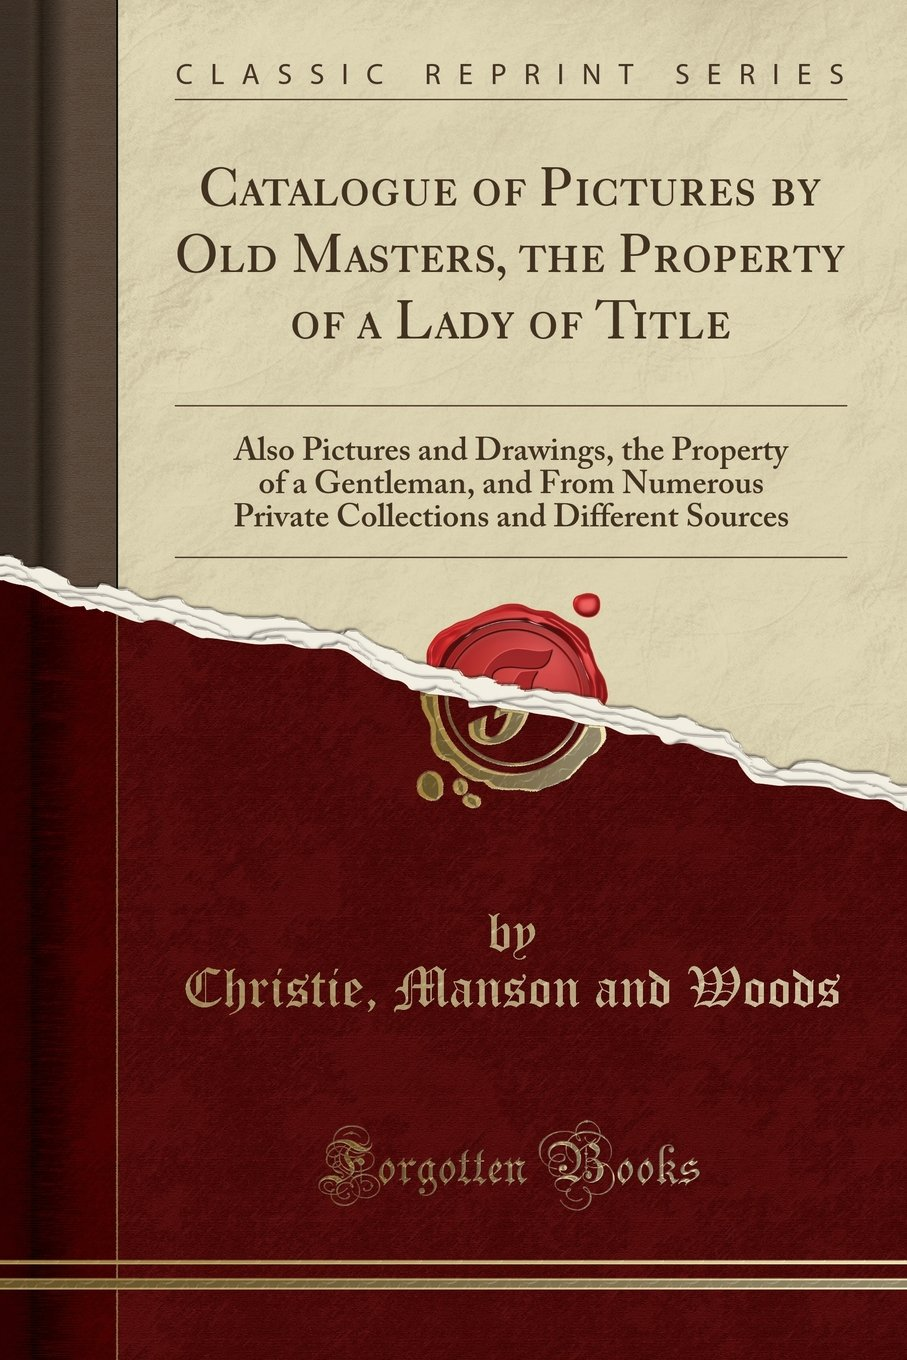 Read Online Catalogue of Pictures by Old Masters, the Property of a Lady of Title: Also Pictures and Drawings, the Property of a Gentleman, and from Numerous ... and Different Sources (Classic Reprint) pdf